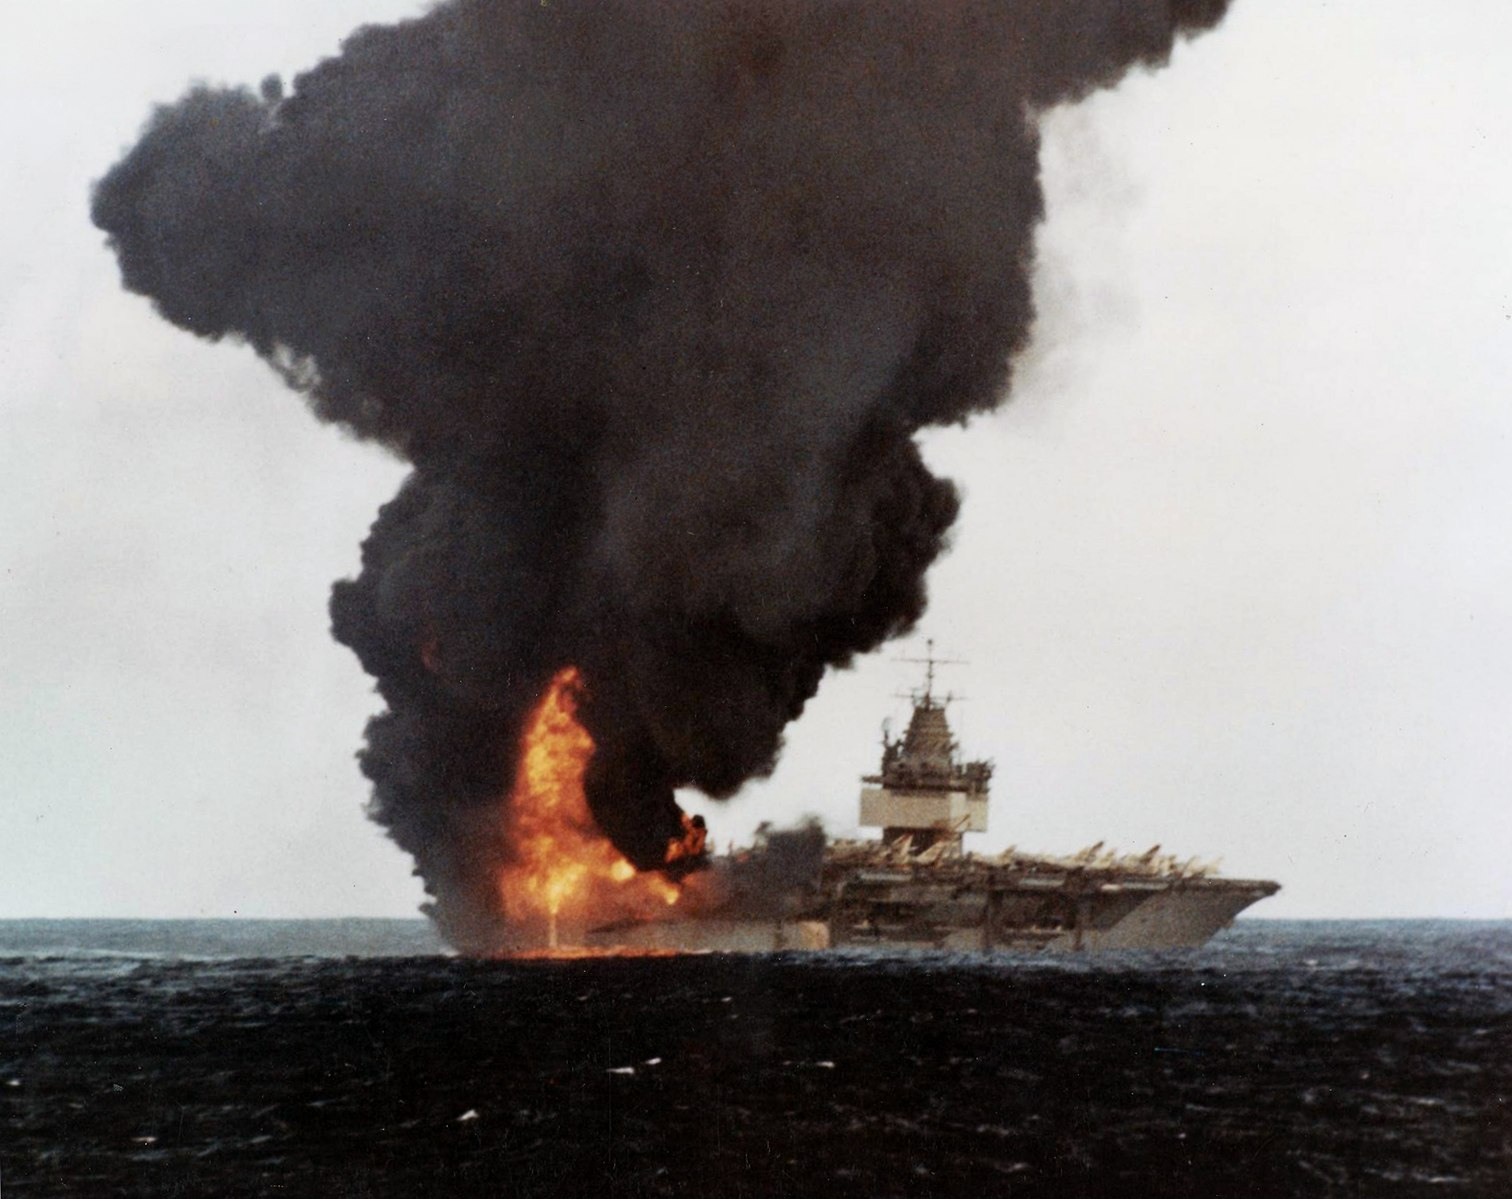 Black smoke rises from the U.S. Navy aircraft carrier USS Enterprise in the aftermath of a fire that occurred while she was underway conducting air operations near Hawaii on 14 January 1969. (U.S. Navy Photo/Wikimedia)